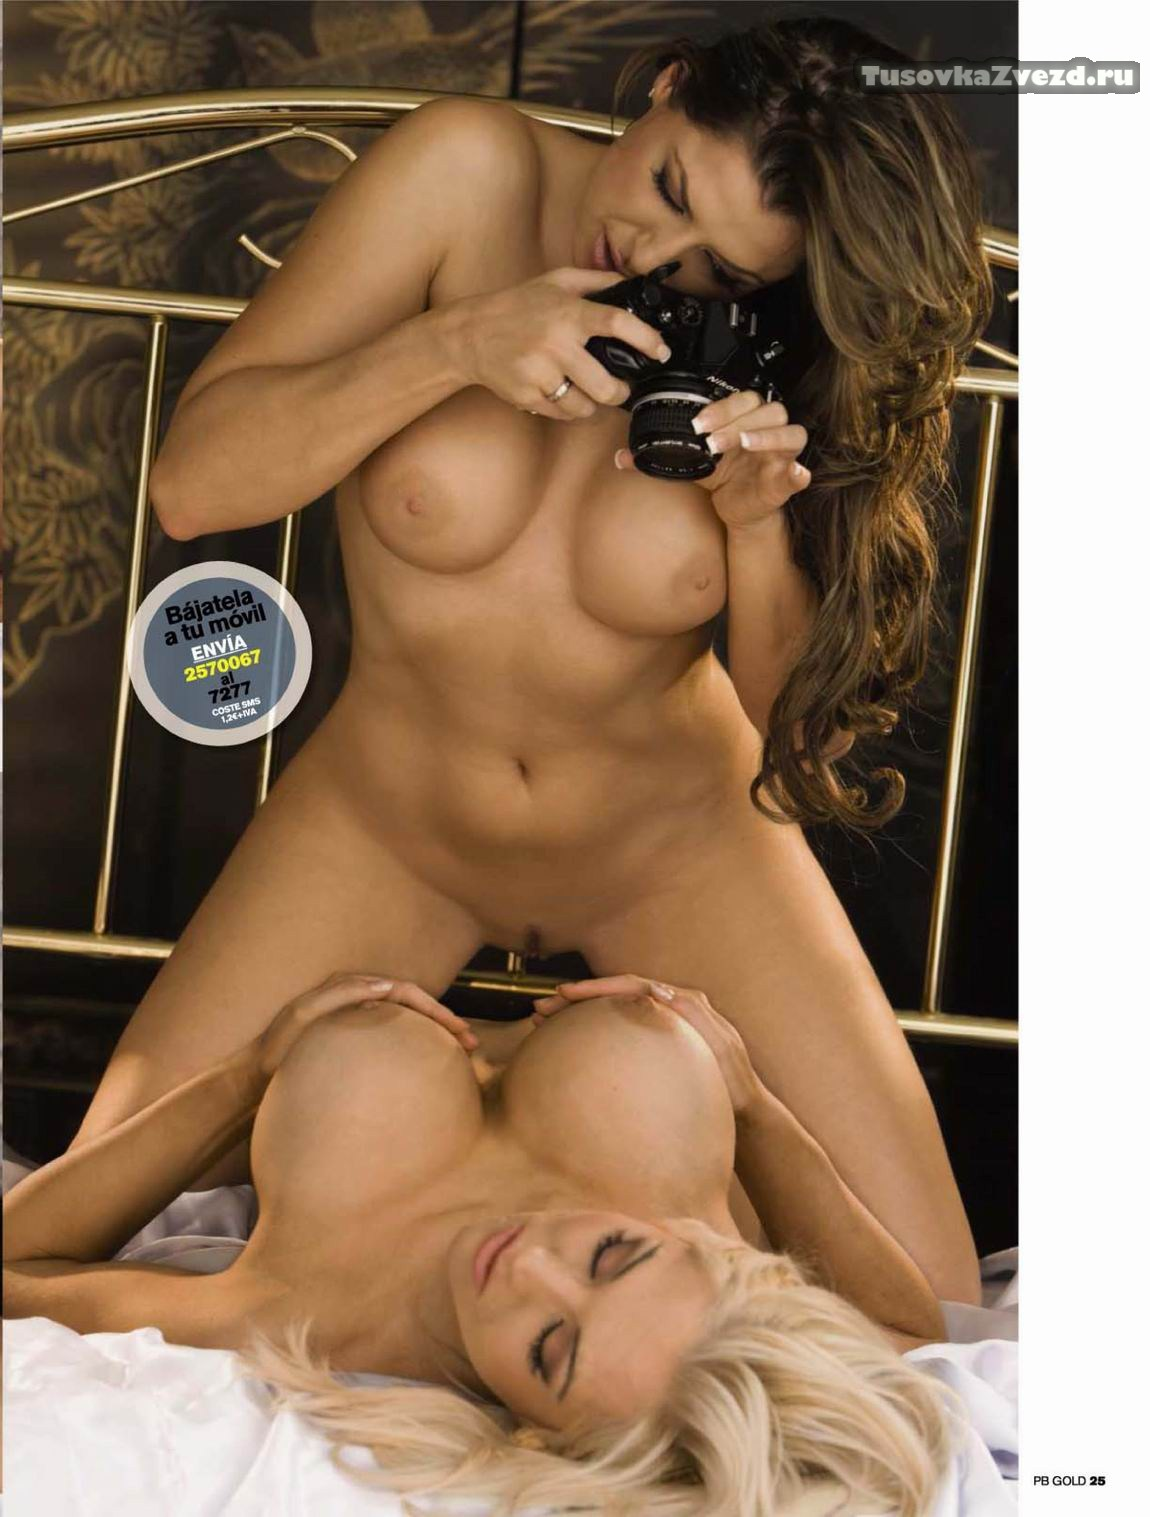 Playboy mension pic gallery porn porn photo